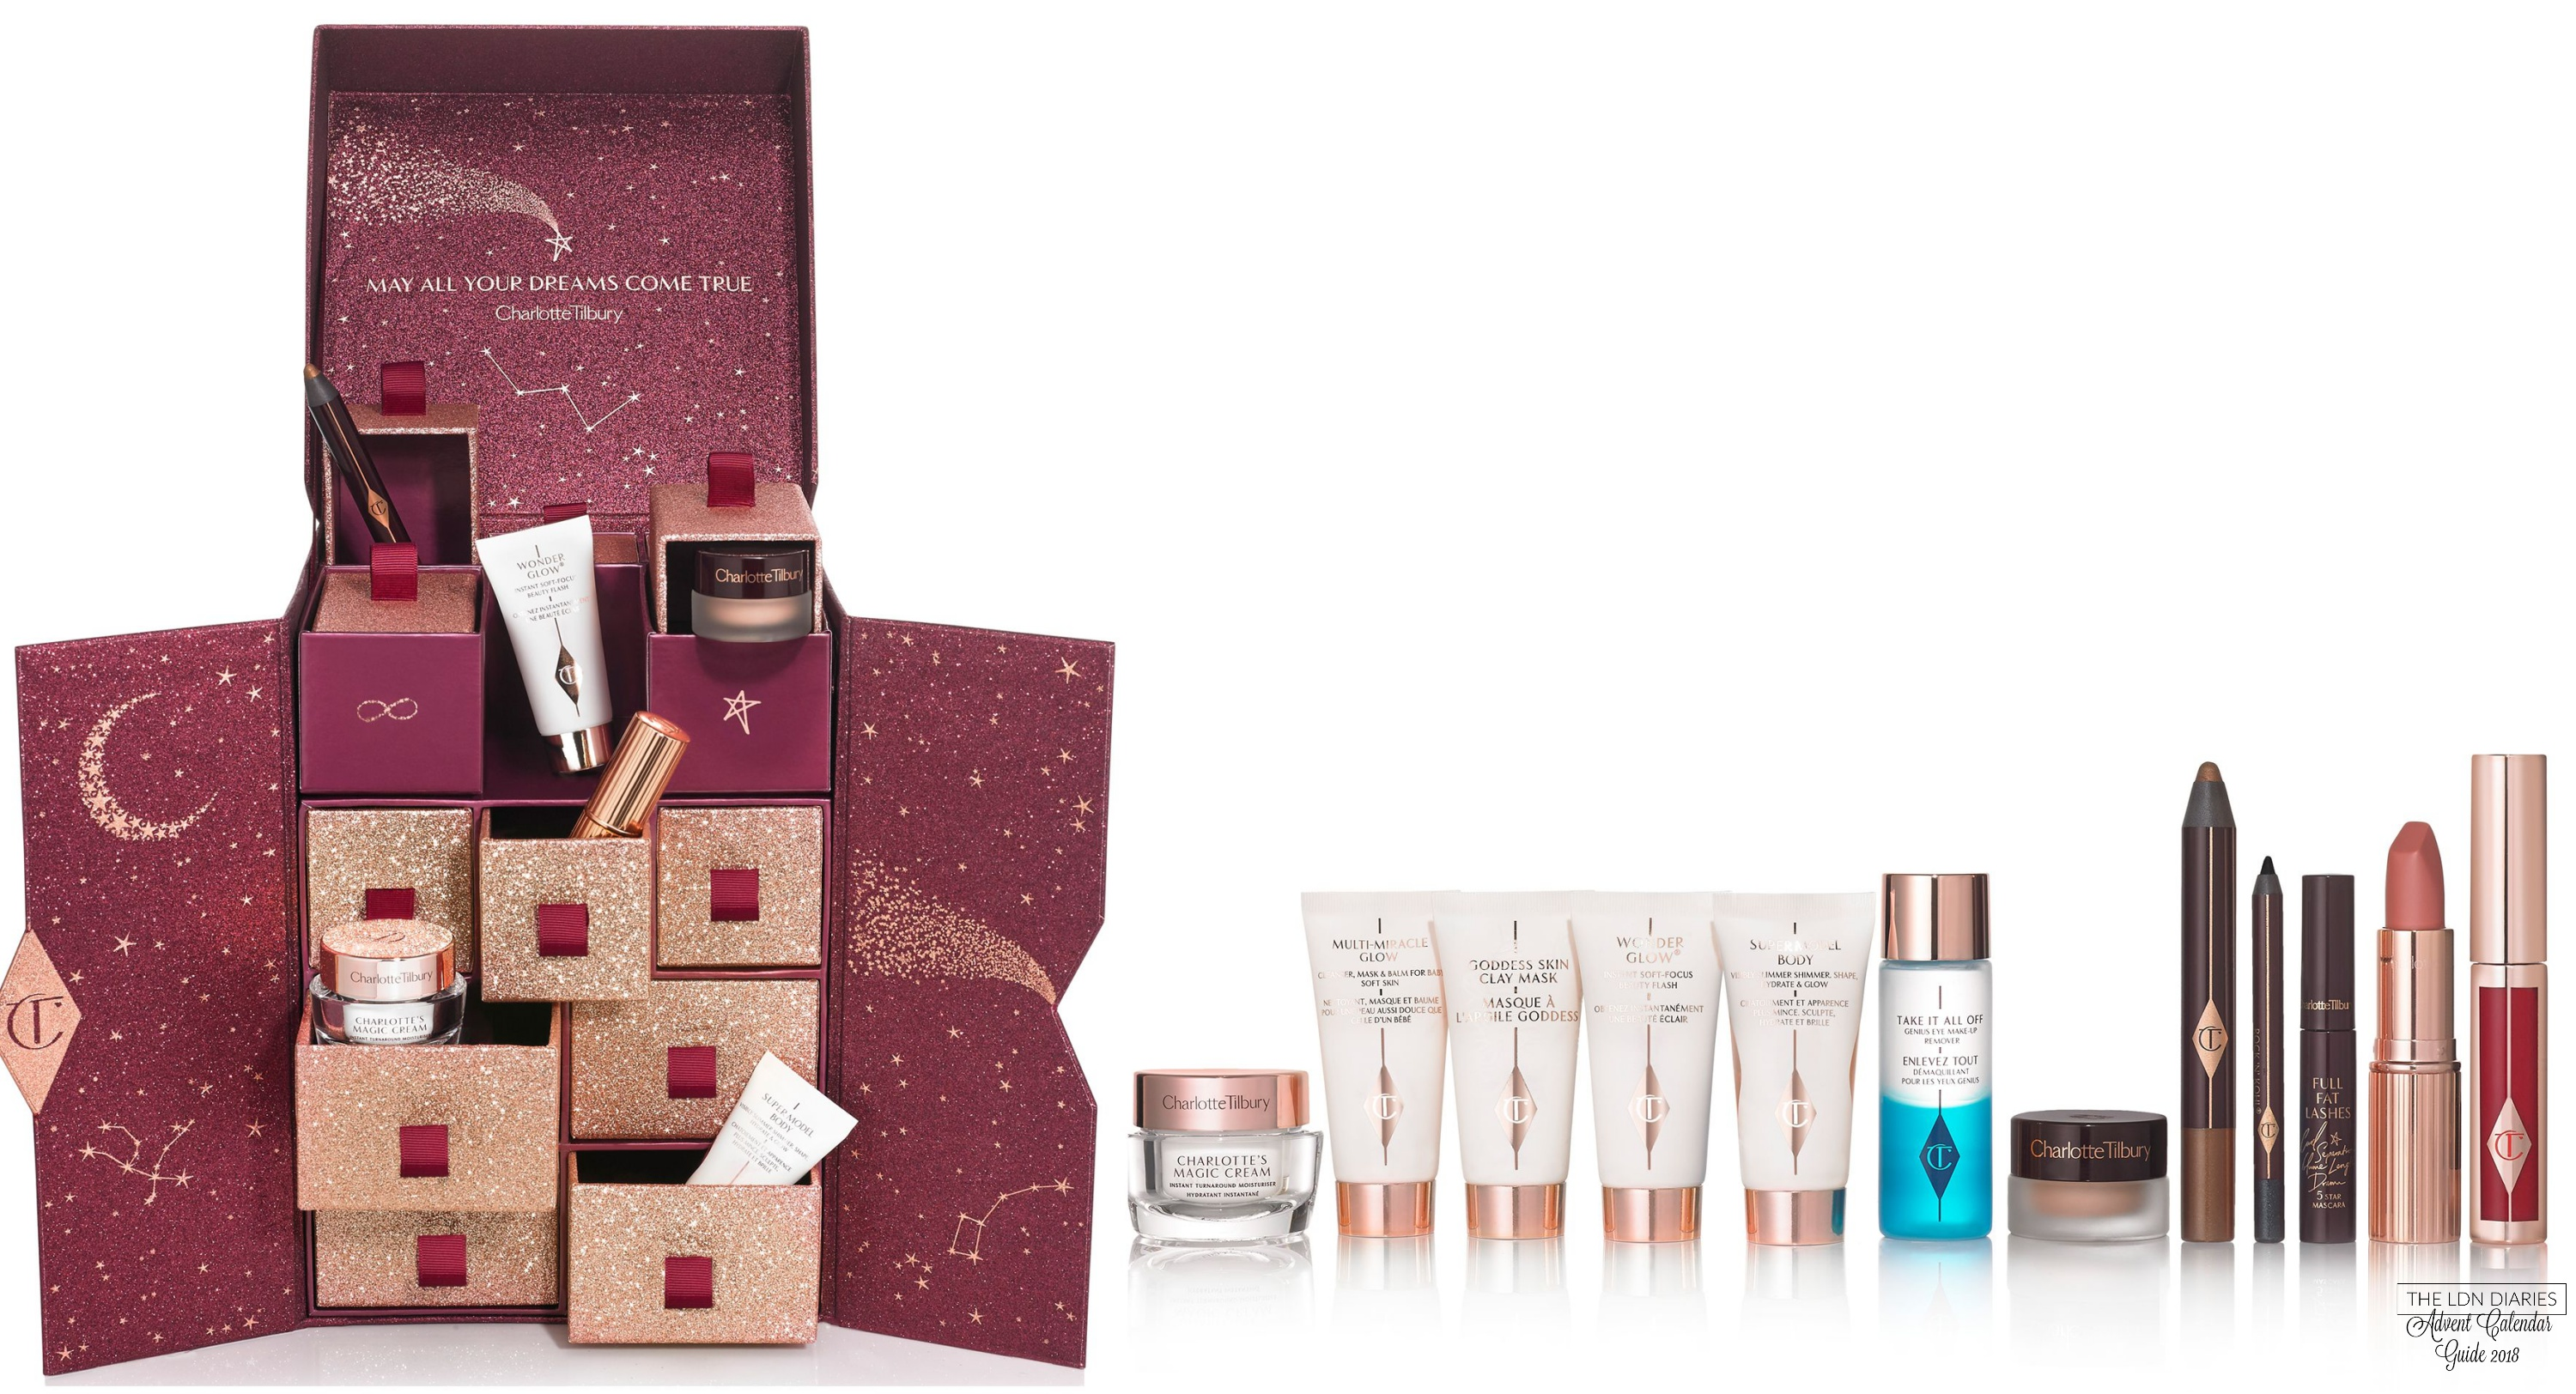 Charlotte Tilbury Beauty Advent Calendar 2018 - The LDN Diaries